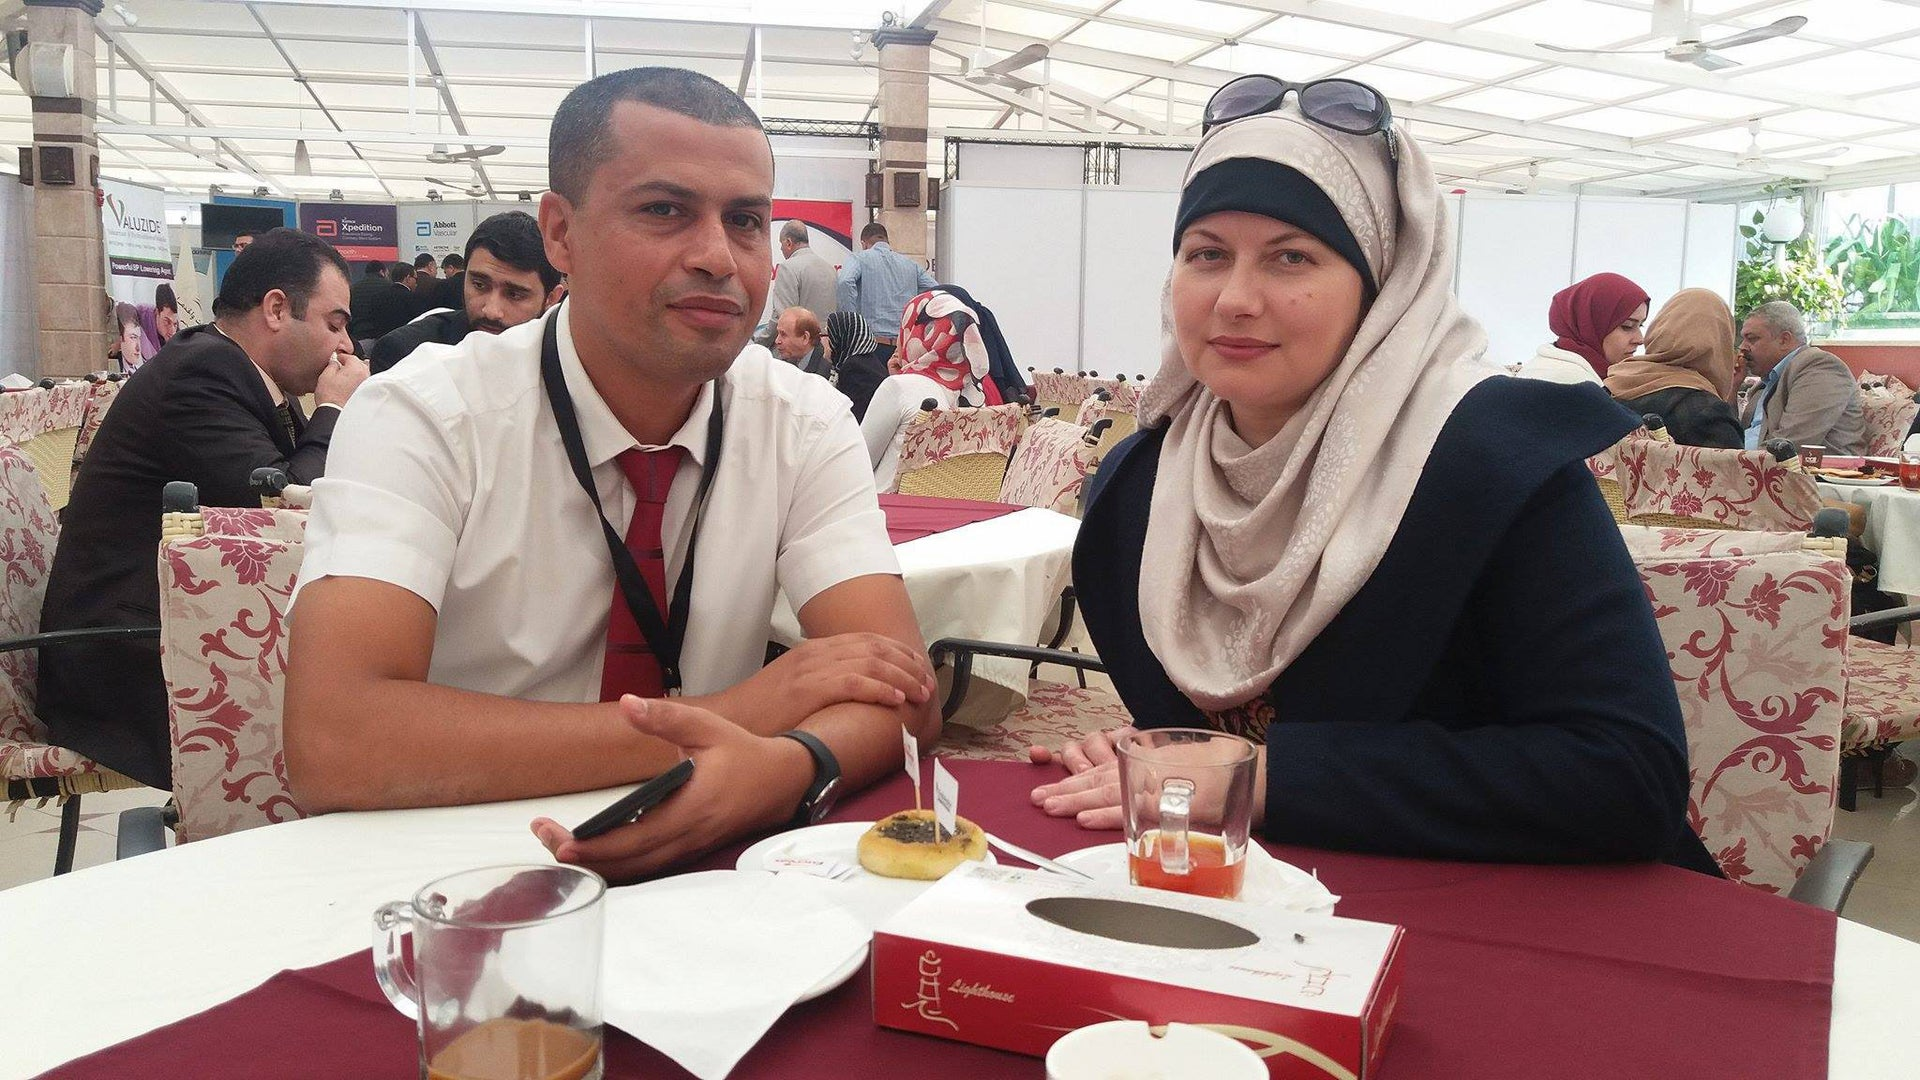 Tanya Kalub with her husband Mohammed at a heart surgery conference in Gaza in 2016.